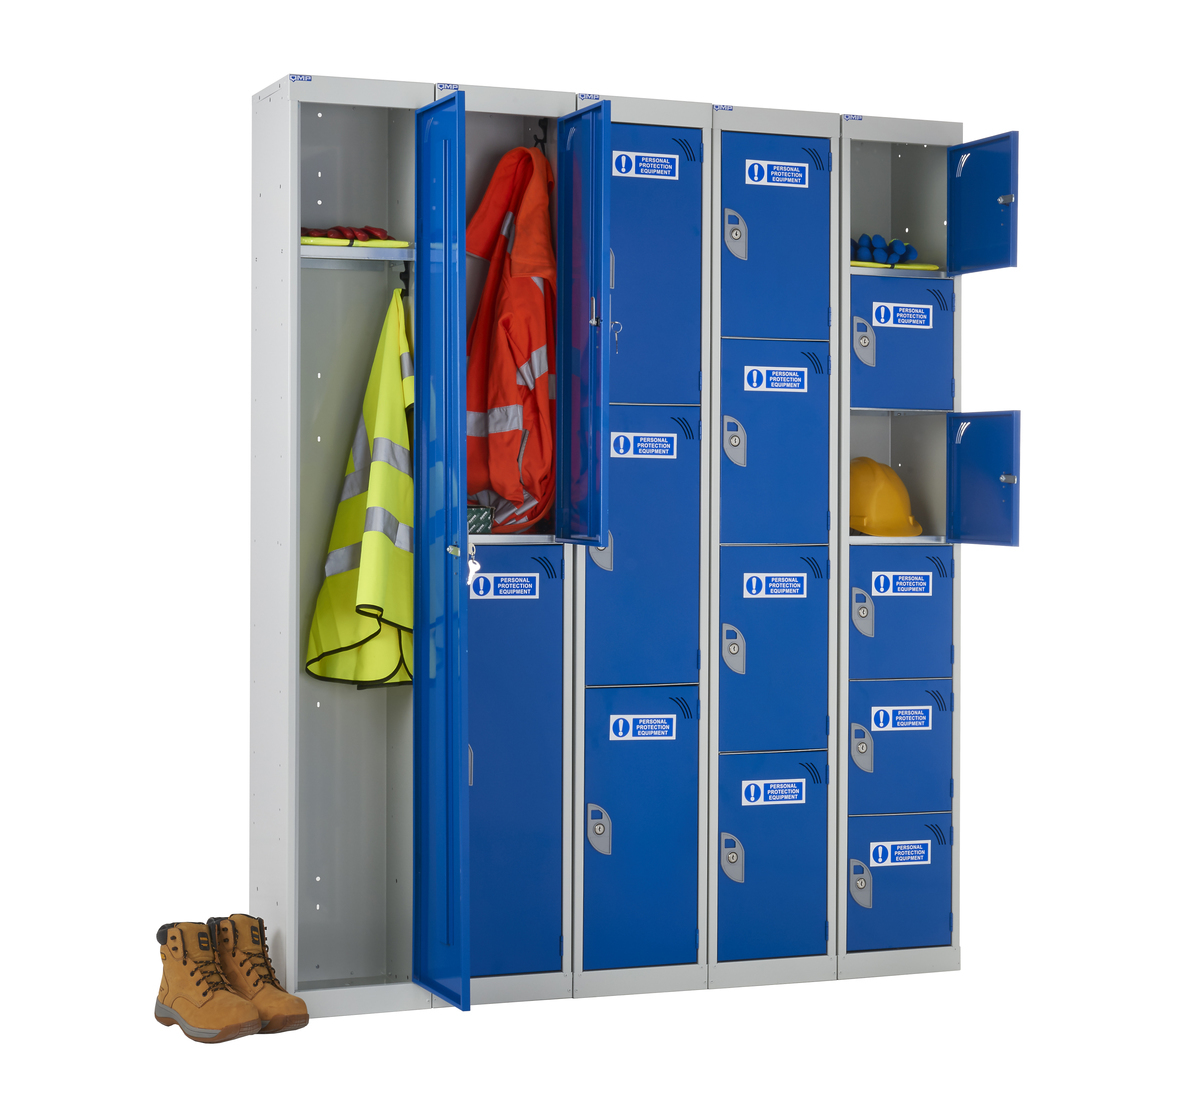 Ppe_lockers_3__group_shot_